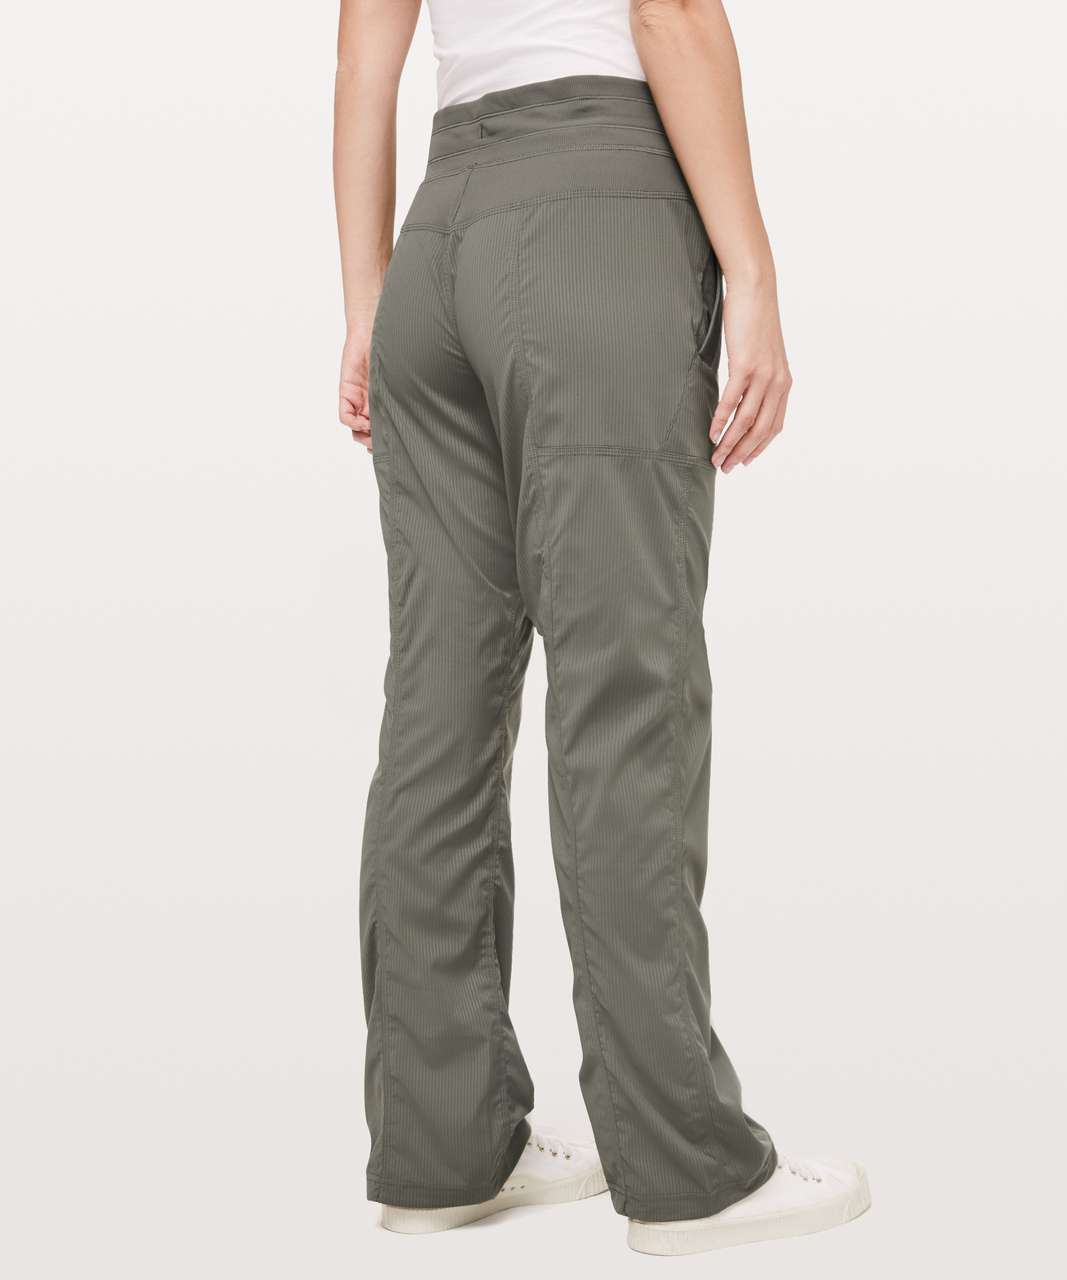 "Lululemon Dance Studio Pant III (Regular) *Unlined 32"" - Grey Sage"